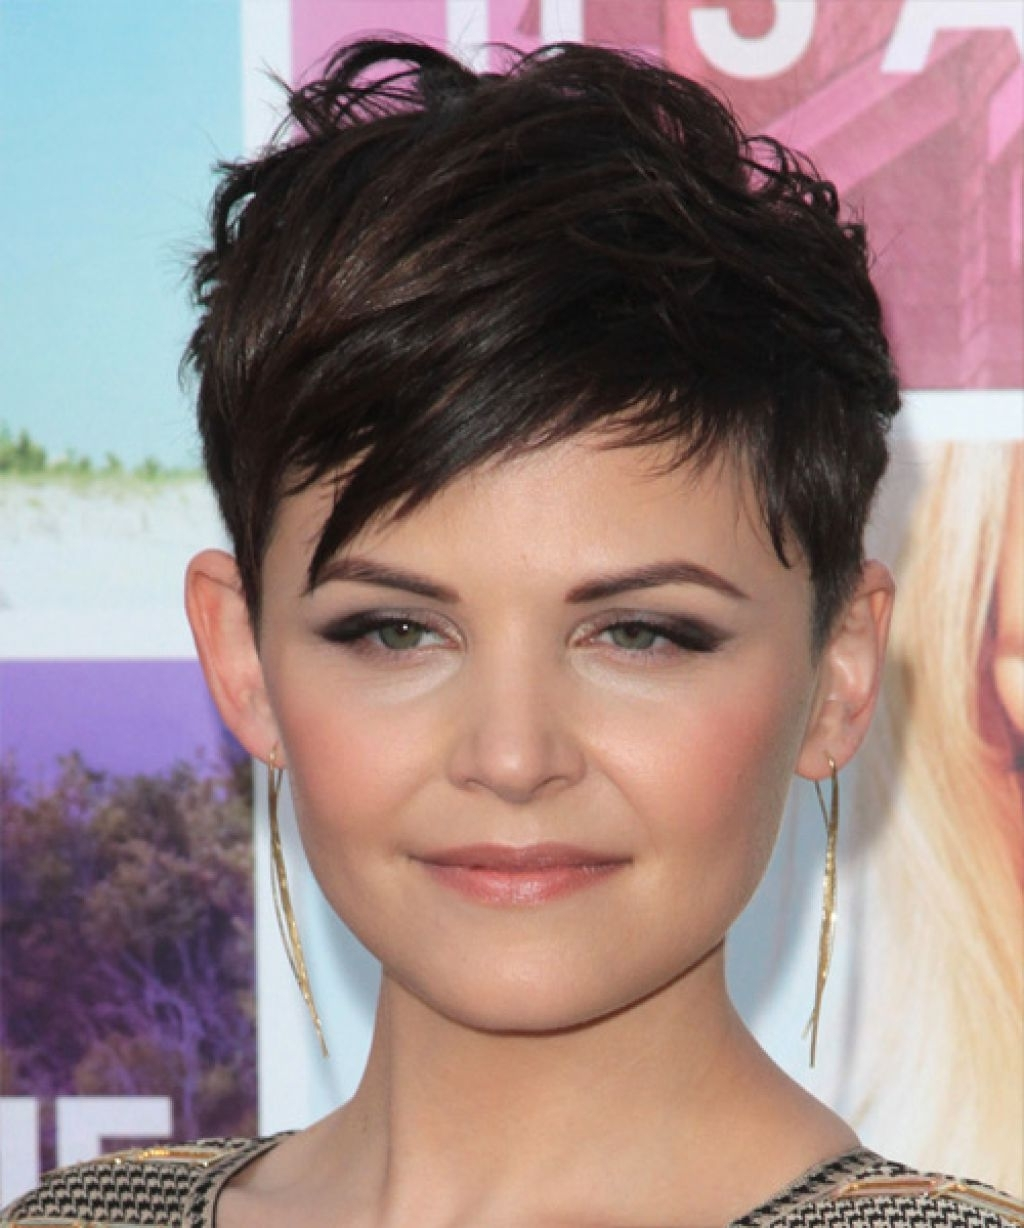 Ginnifer Goodwin Short Straight Pixie Hairstyle With Most Recently Short Straight Pixie Hairstyles (Gallery 12 of 15)